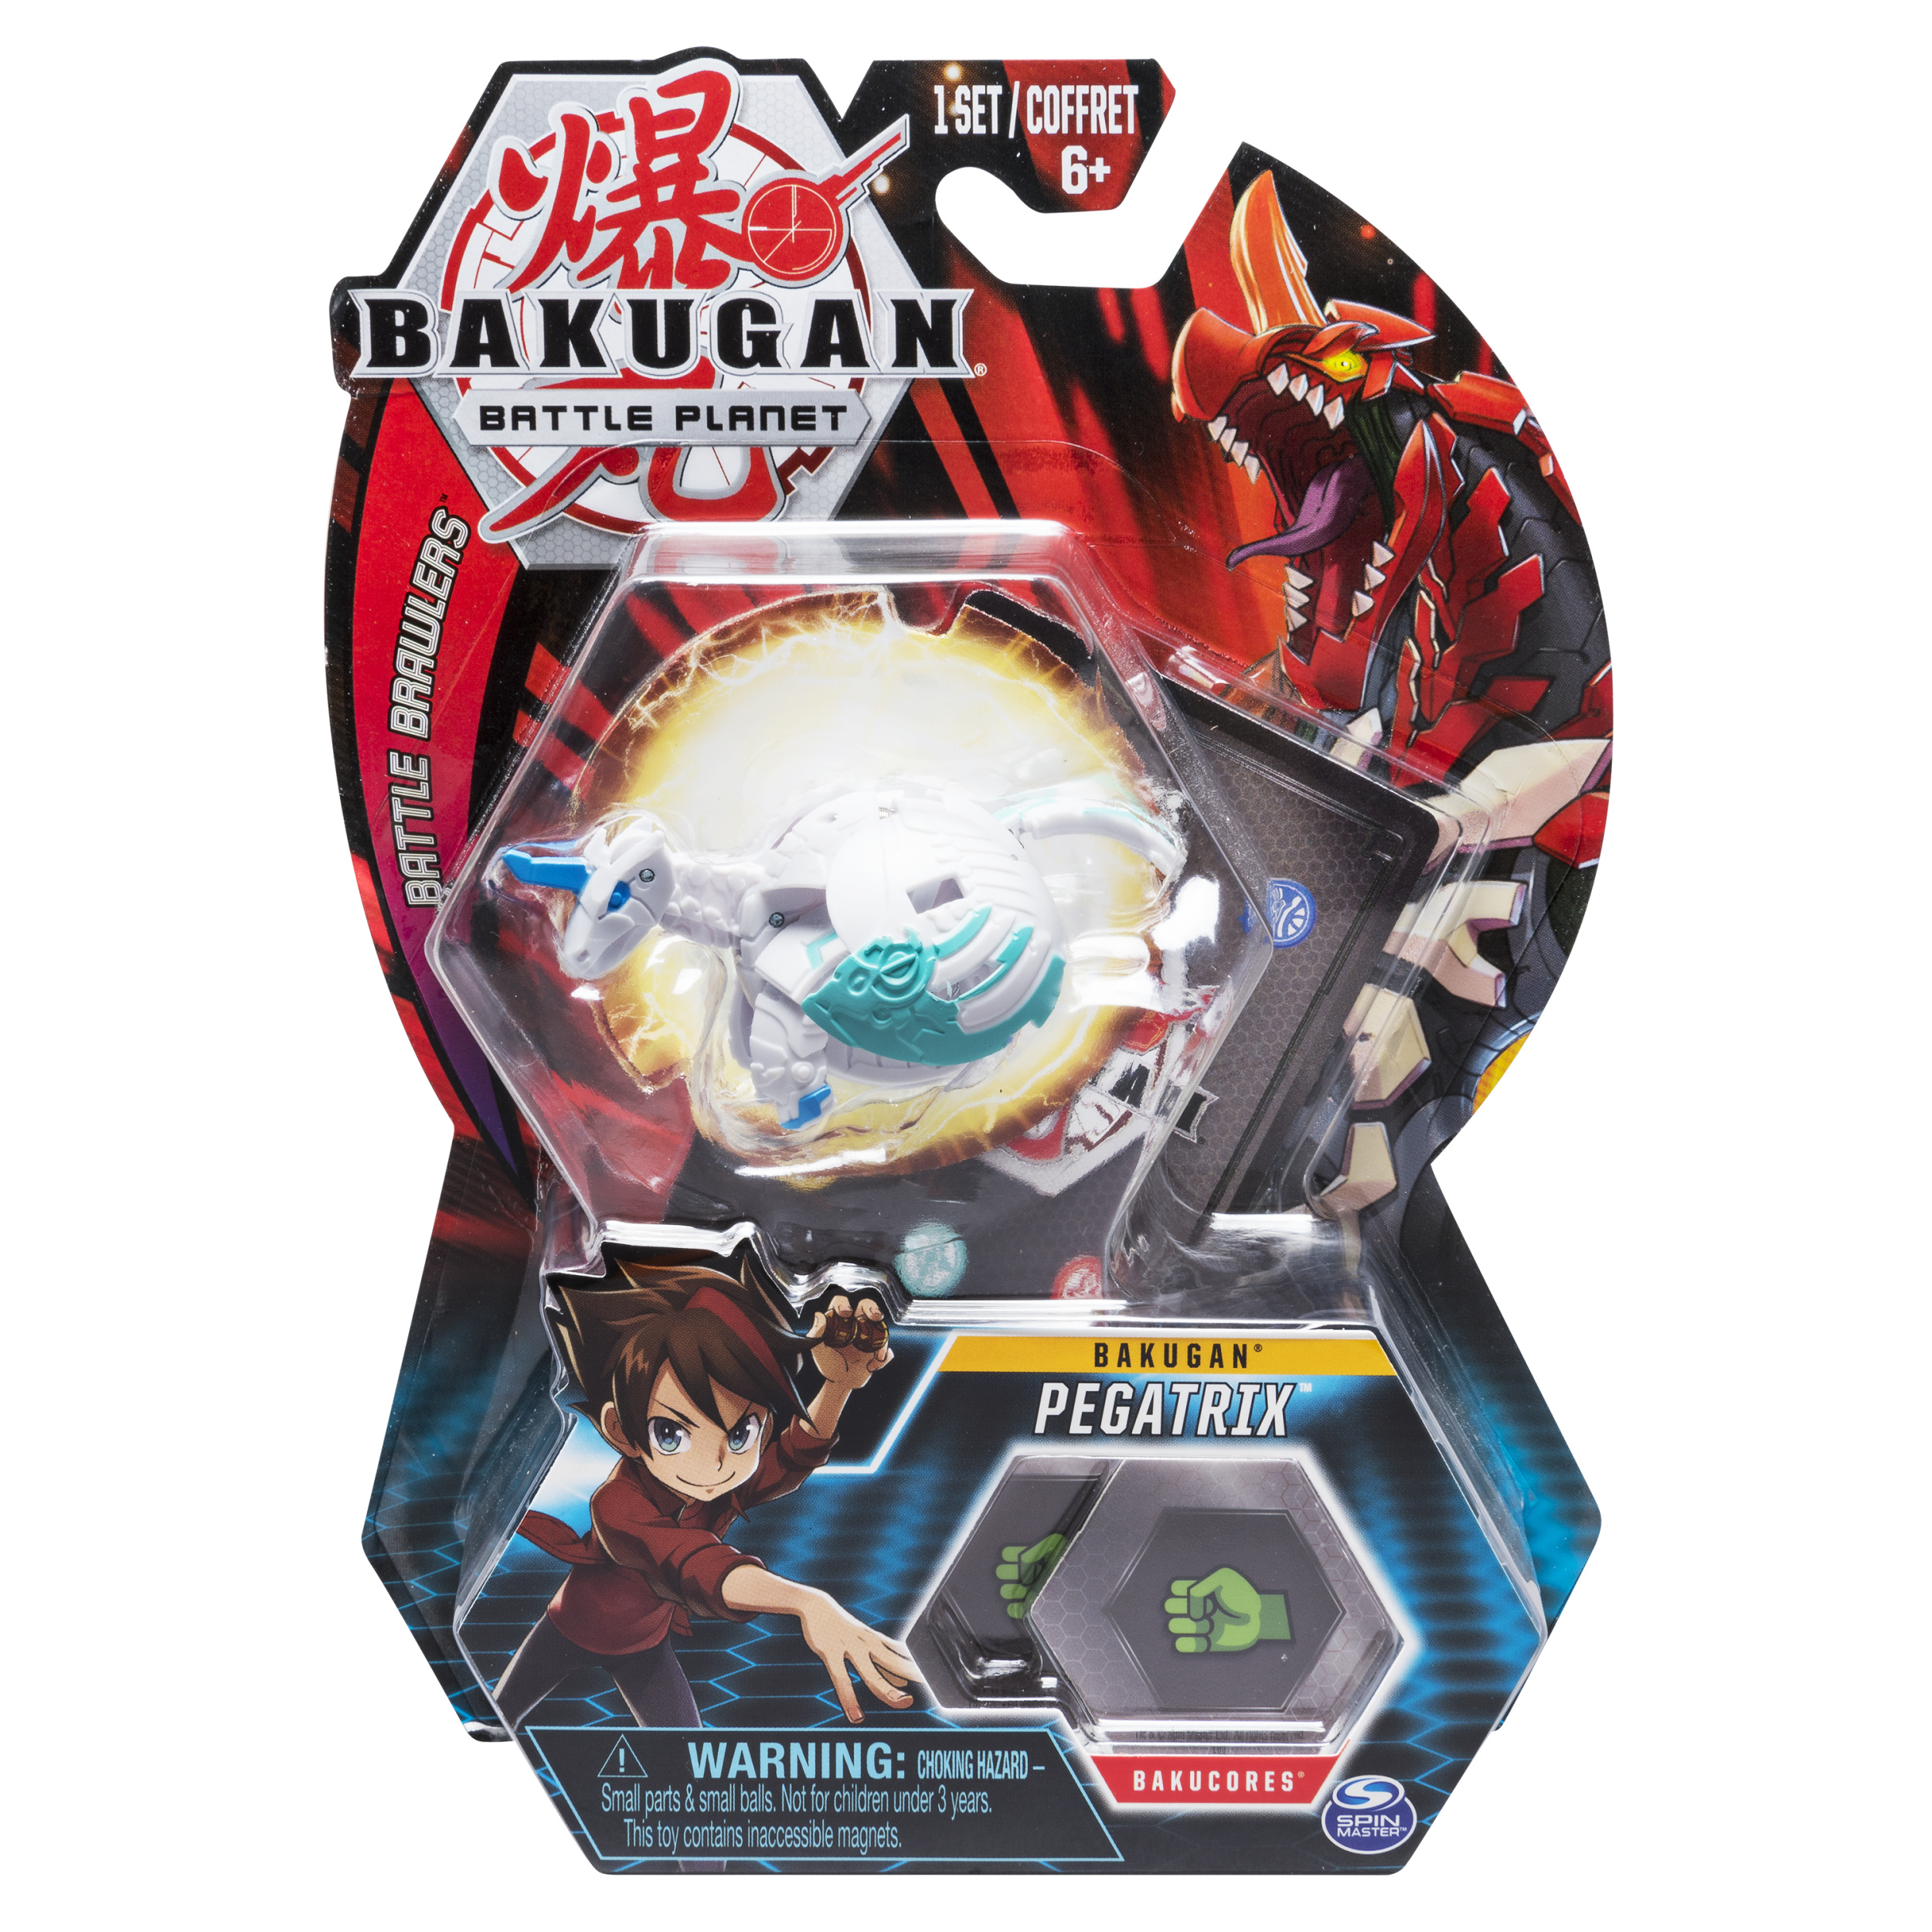 Bakugan, Pegatrix, 2-inch Tall Collectible Transforming Creature, for Ages 6 and Up